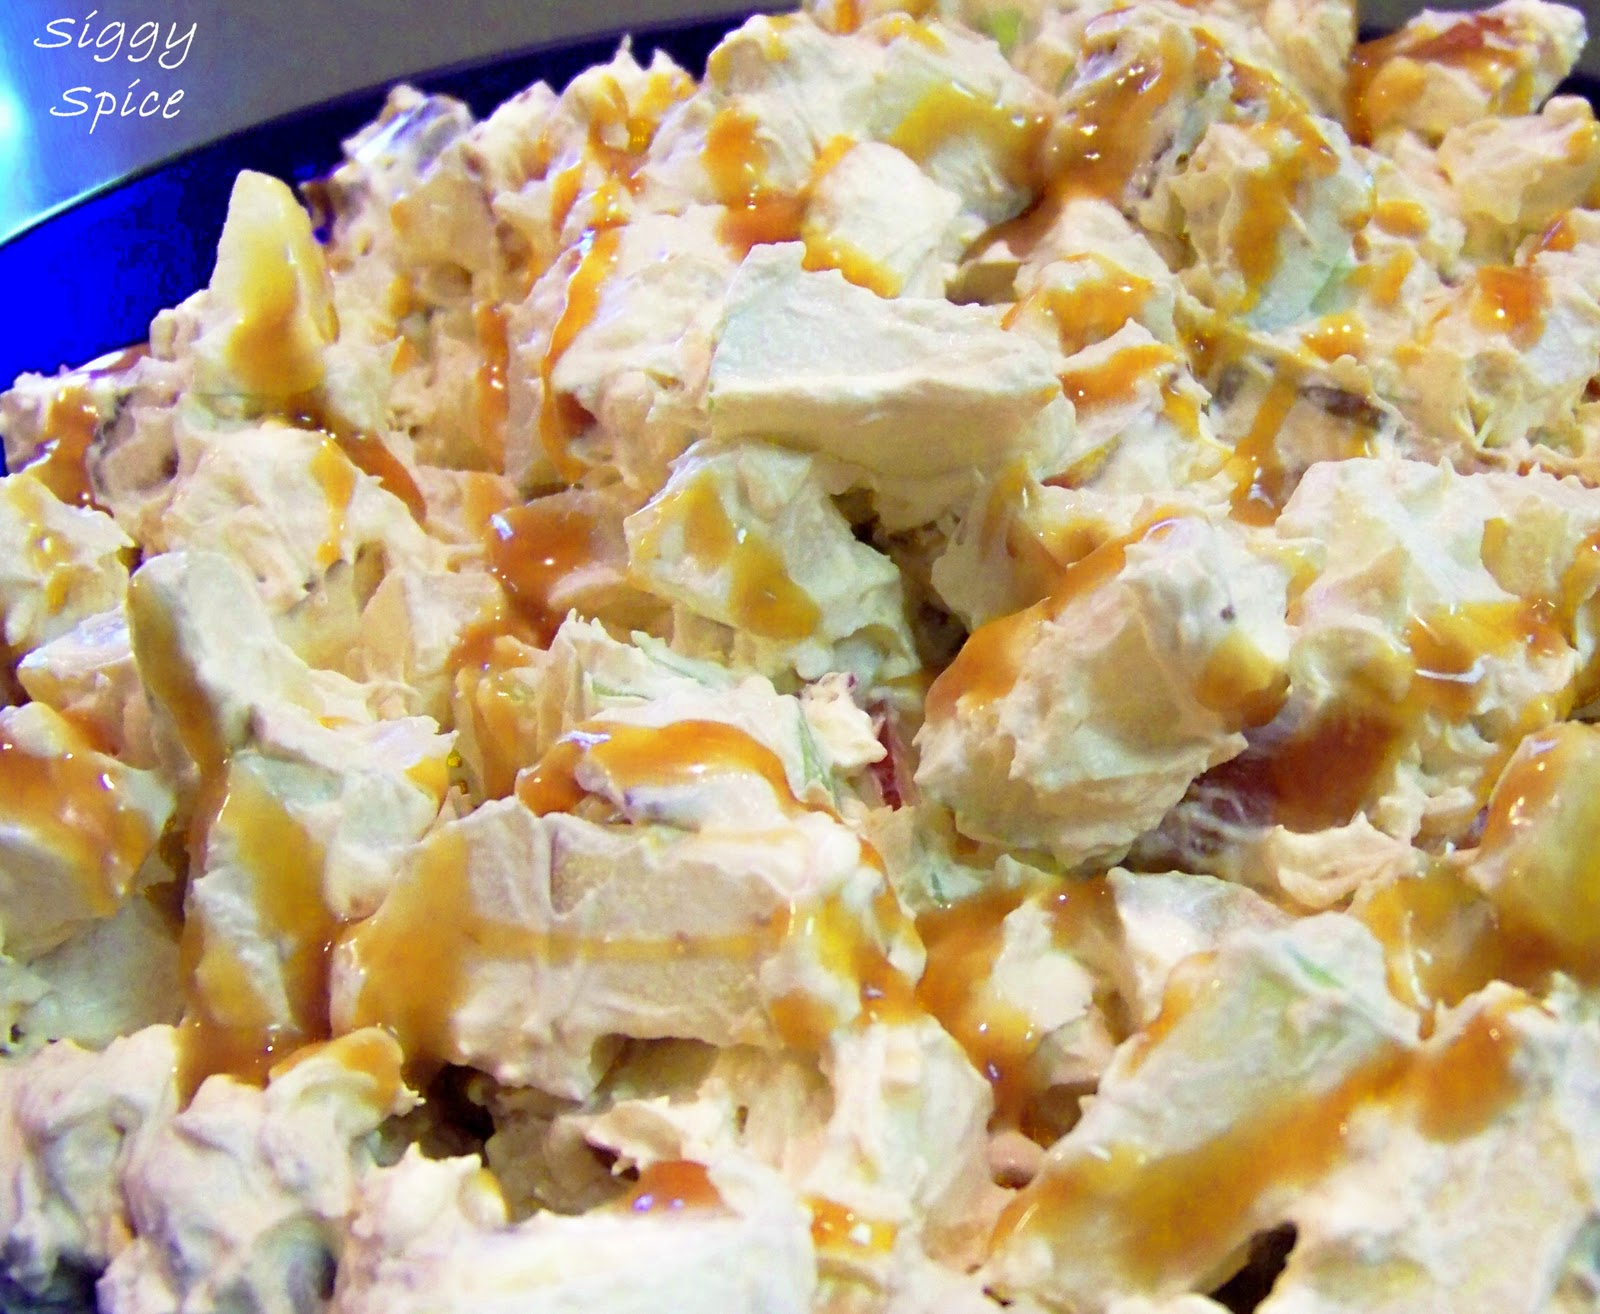 ... Apple Candy Bar Salad - a healthier version of Snickers salad